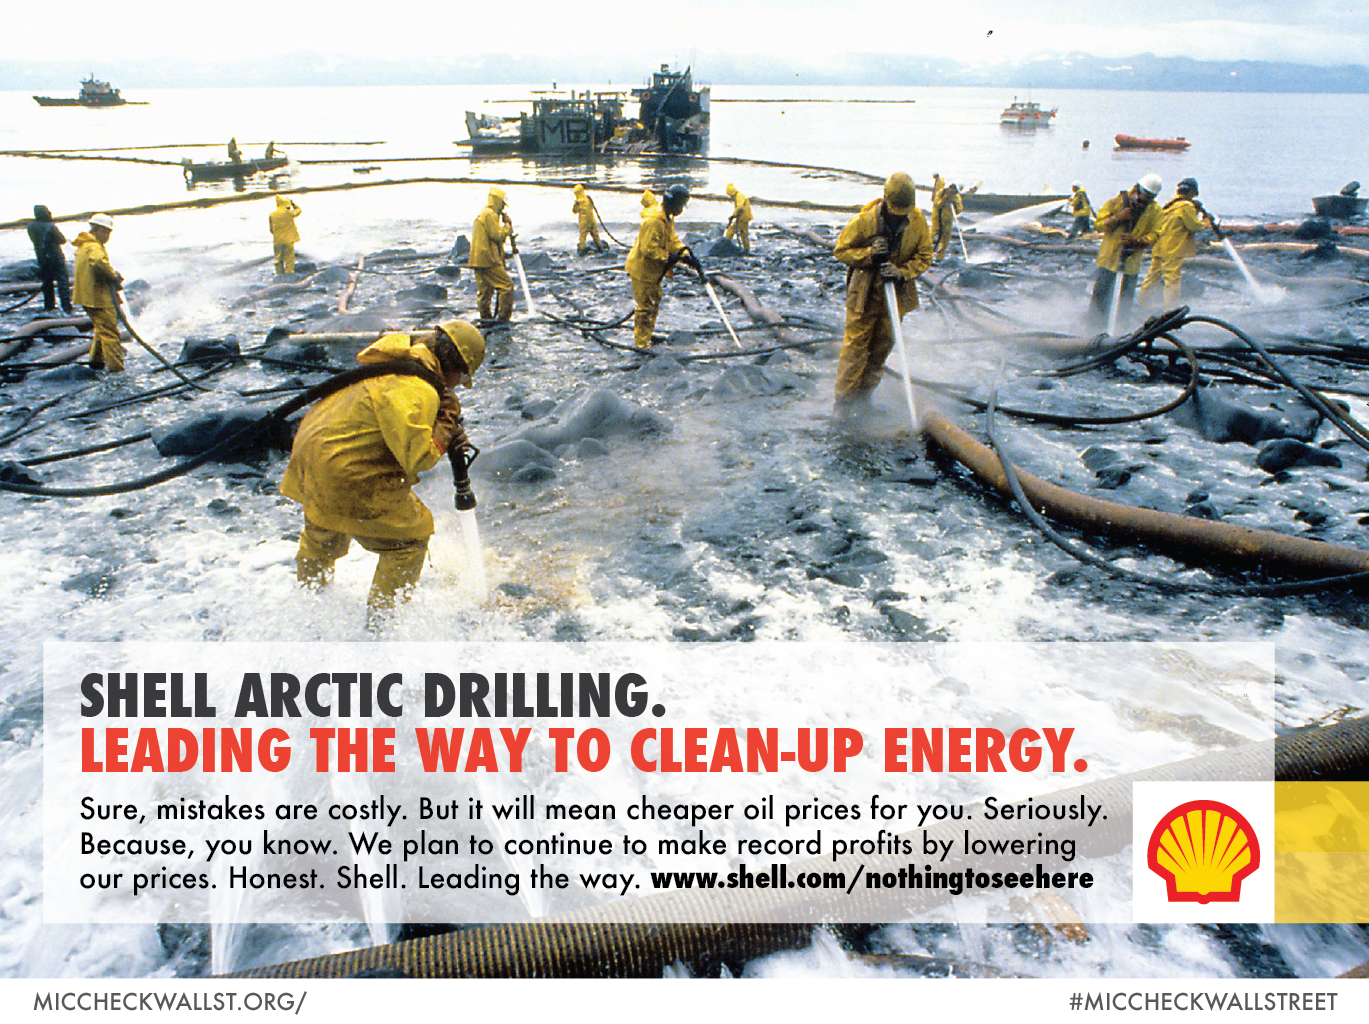 http://transitionvoice.com/wp-content/uploads/shell-arctic-drilling-ad.png